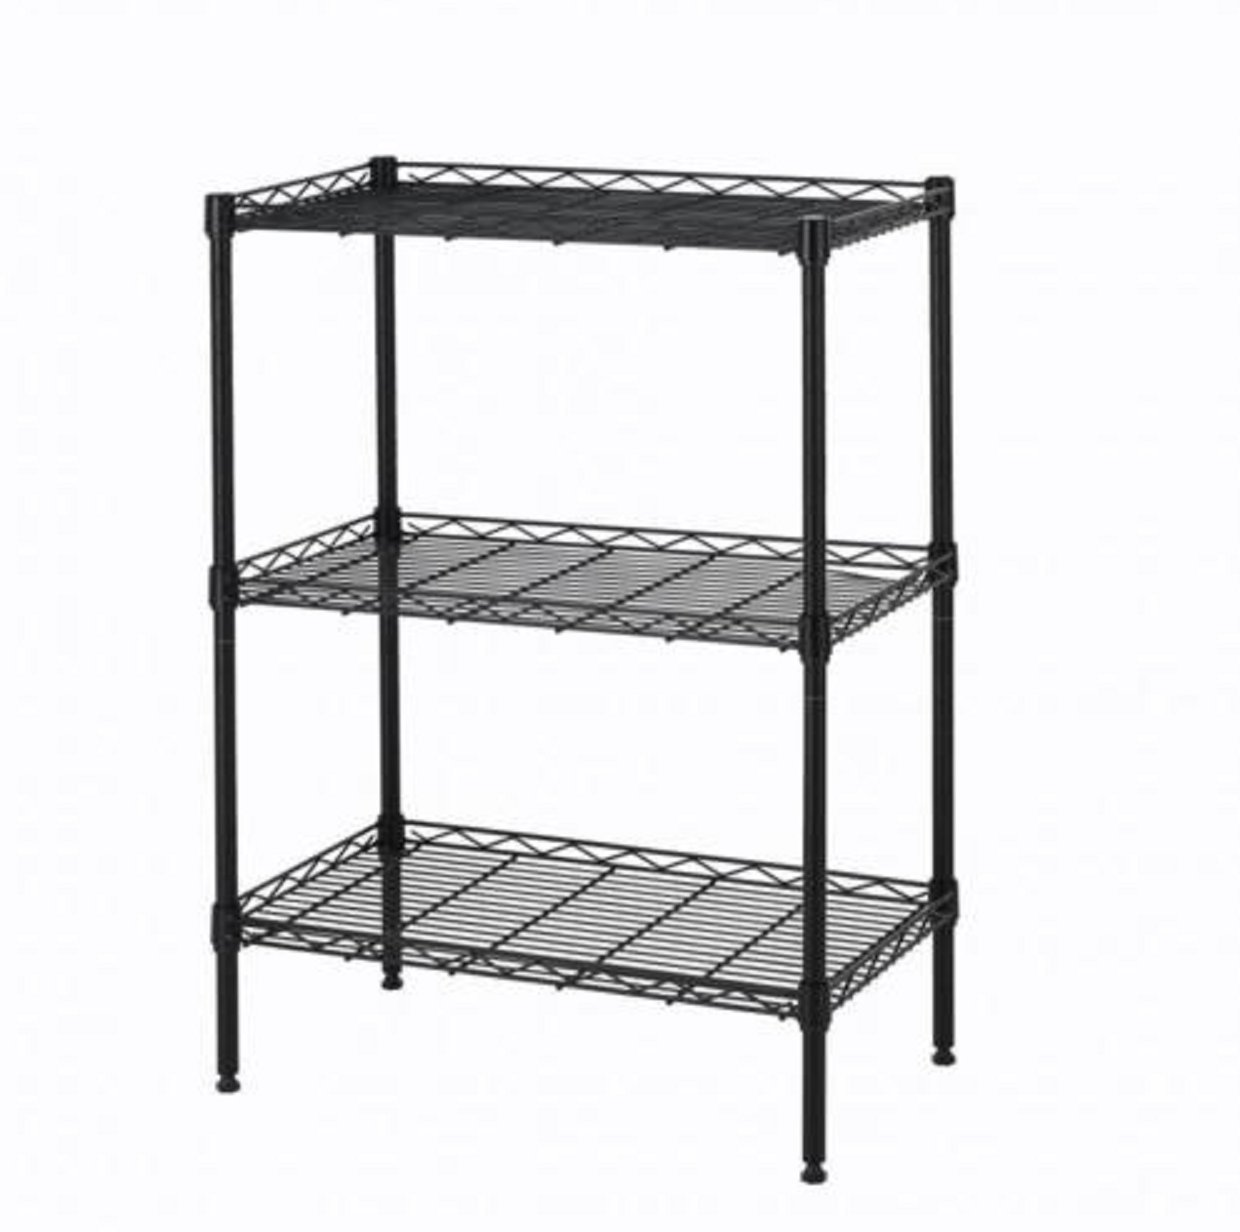 Wire Shelving Wall Unit 3 Shelves Shelf Rack Wide Duty Heavy Metal Black 3 Layer Tire by Brother123shop